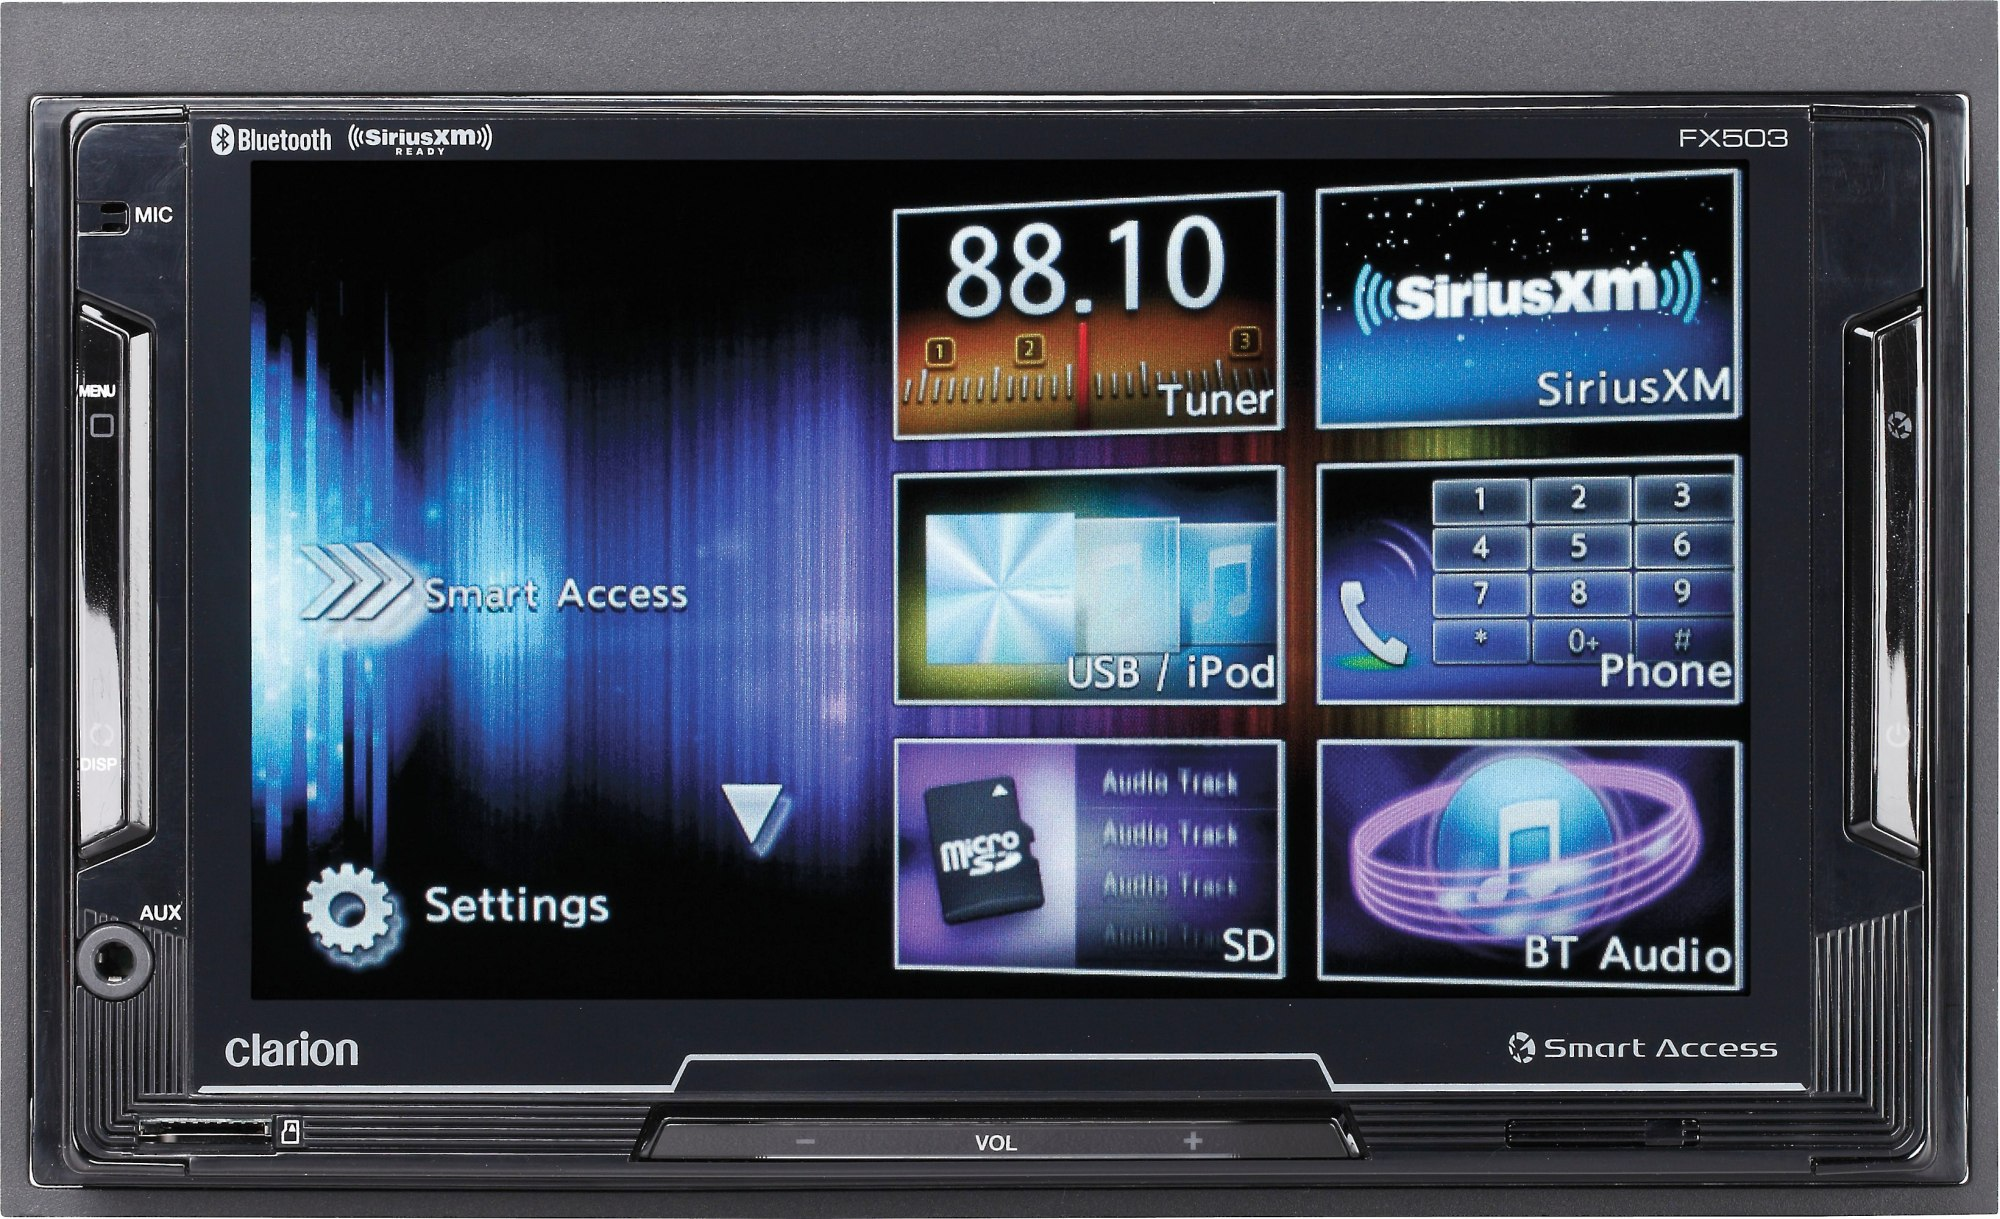 hight resolution of clarion fx503 does not play cds digital multimedia receiver at crutchfield com